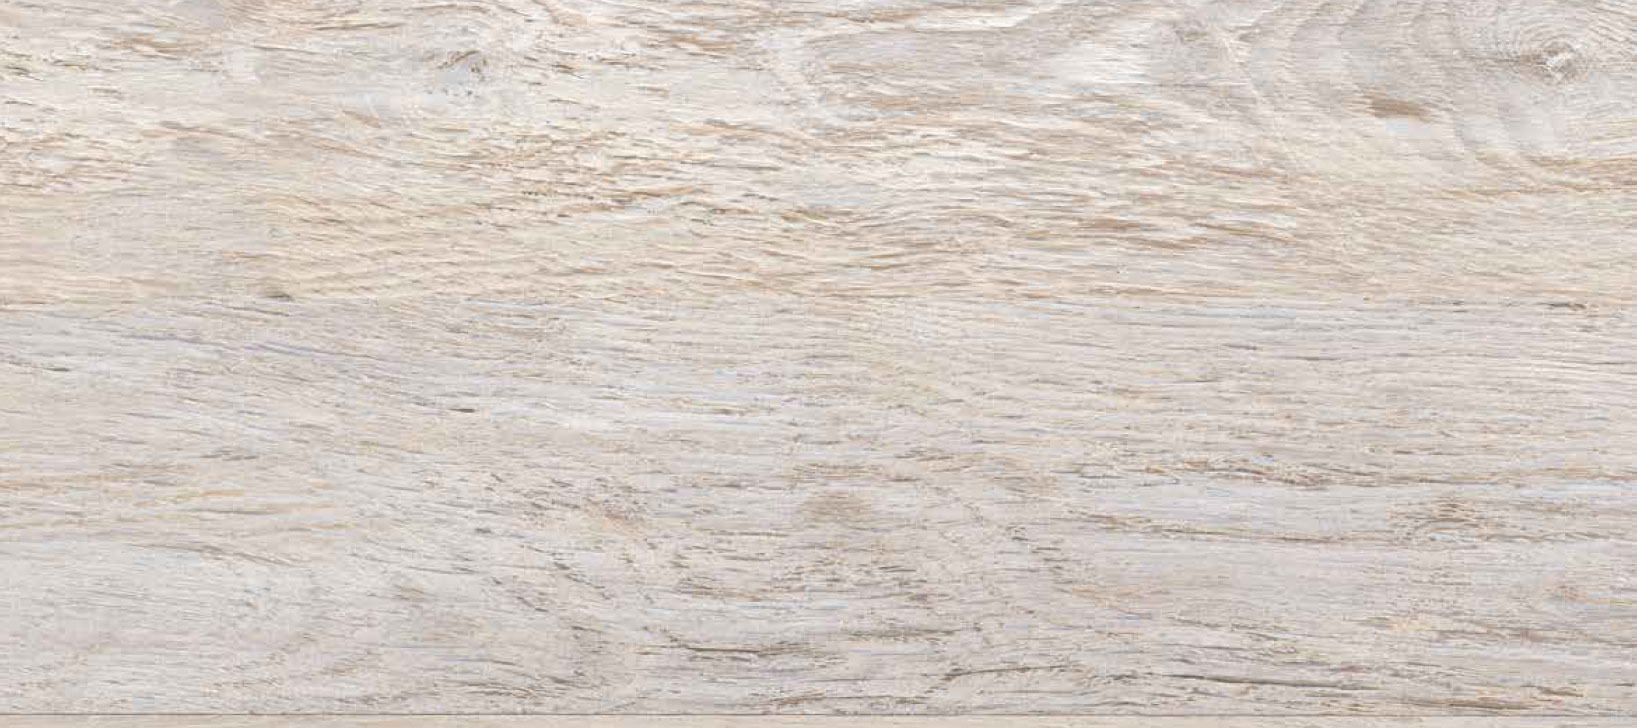 Duragrain-Whitewashed-Oak-Portspecialisten